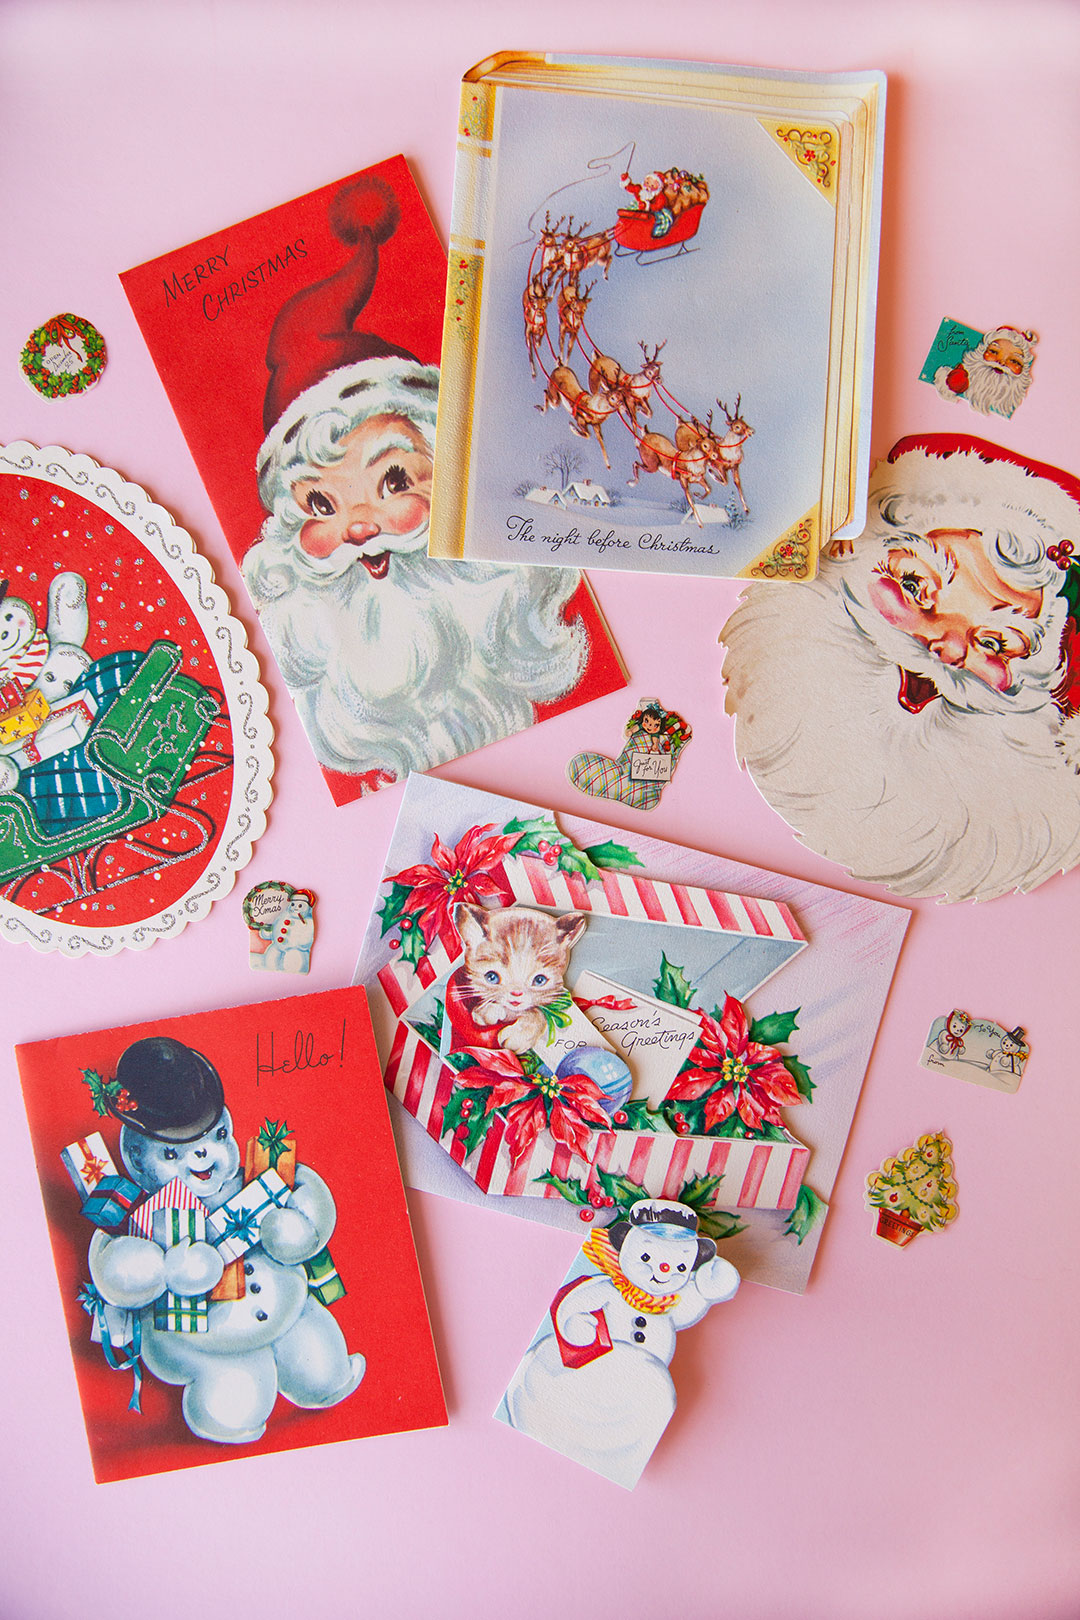 Vintage Christmas greeting cards on a pink background.